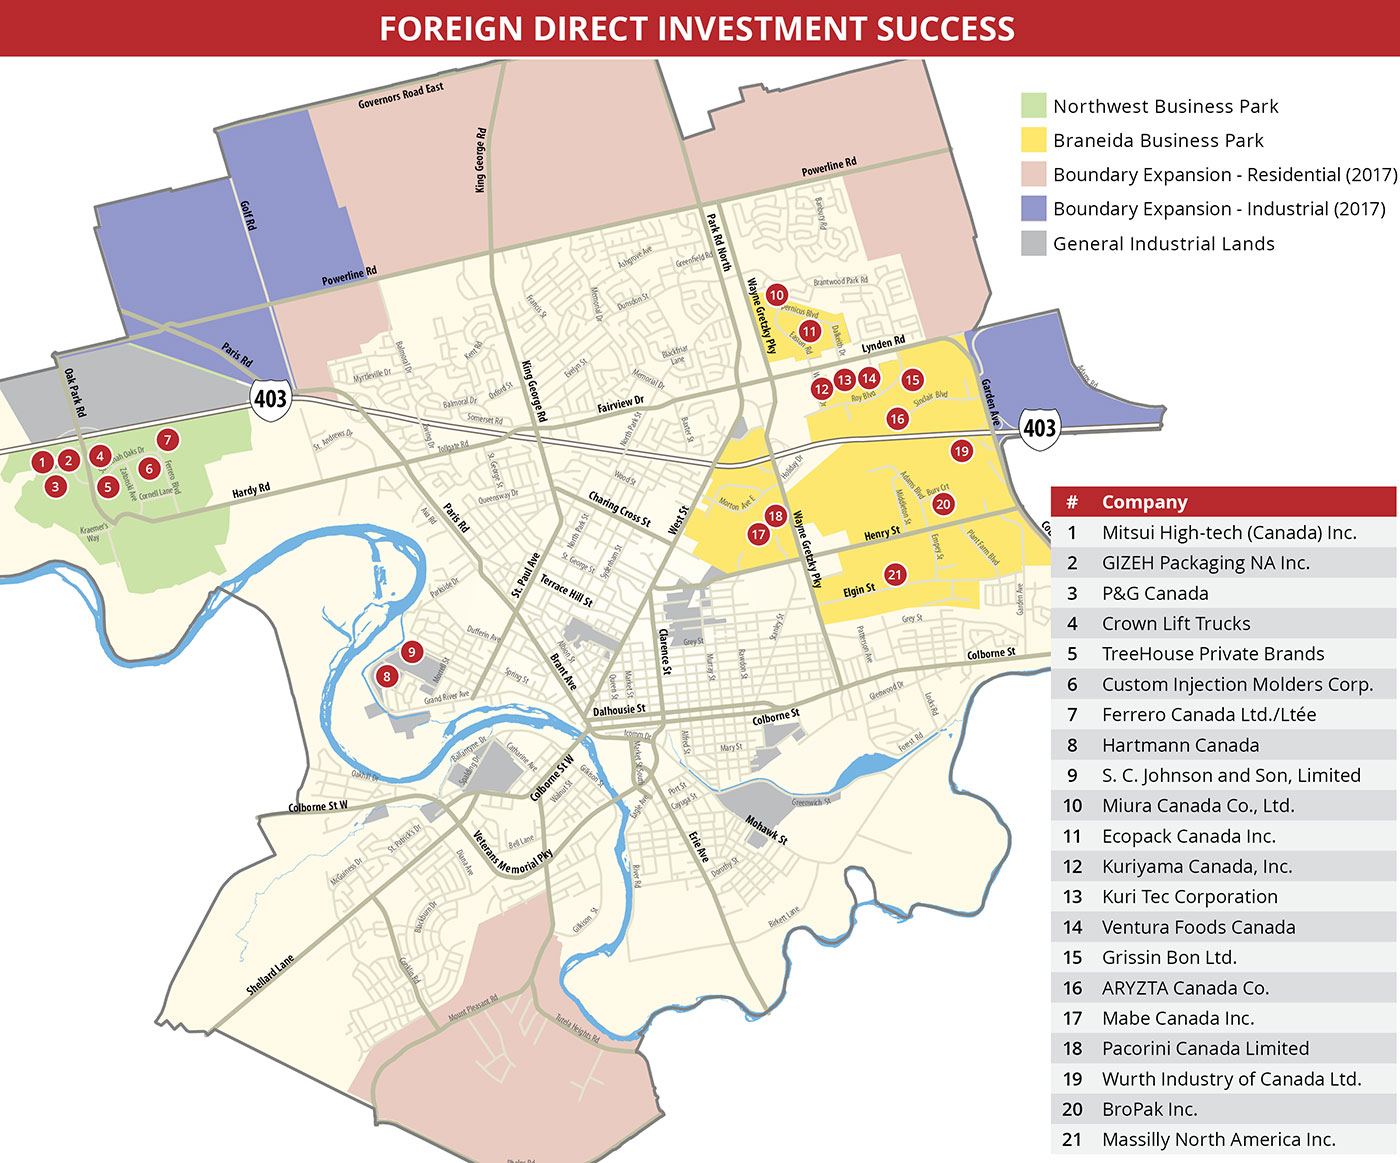 map of Brantford with Foreign Direct Investment locations